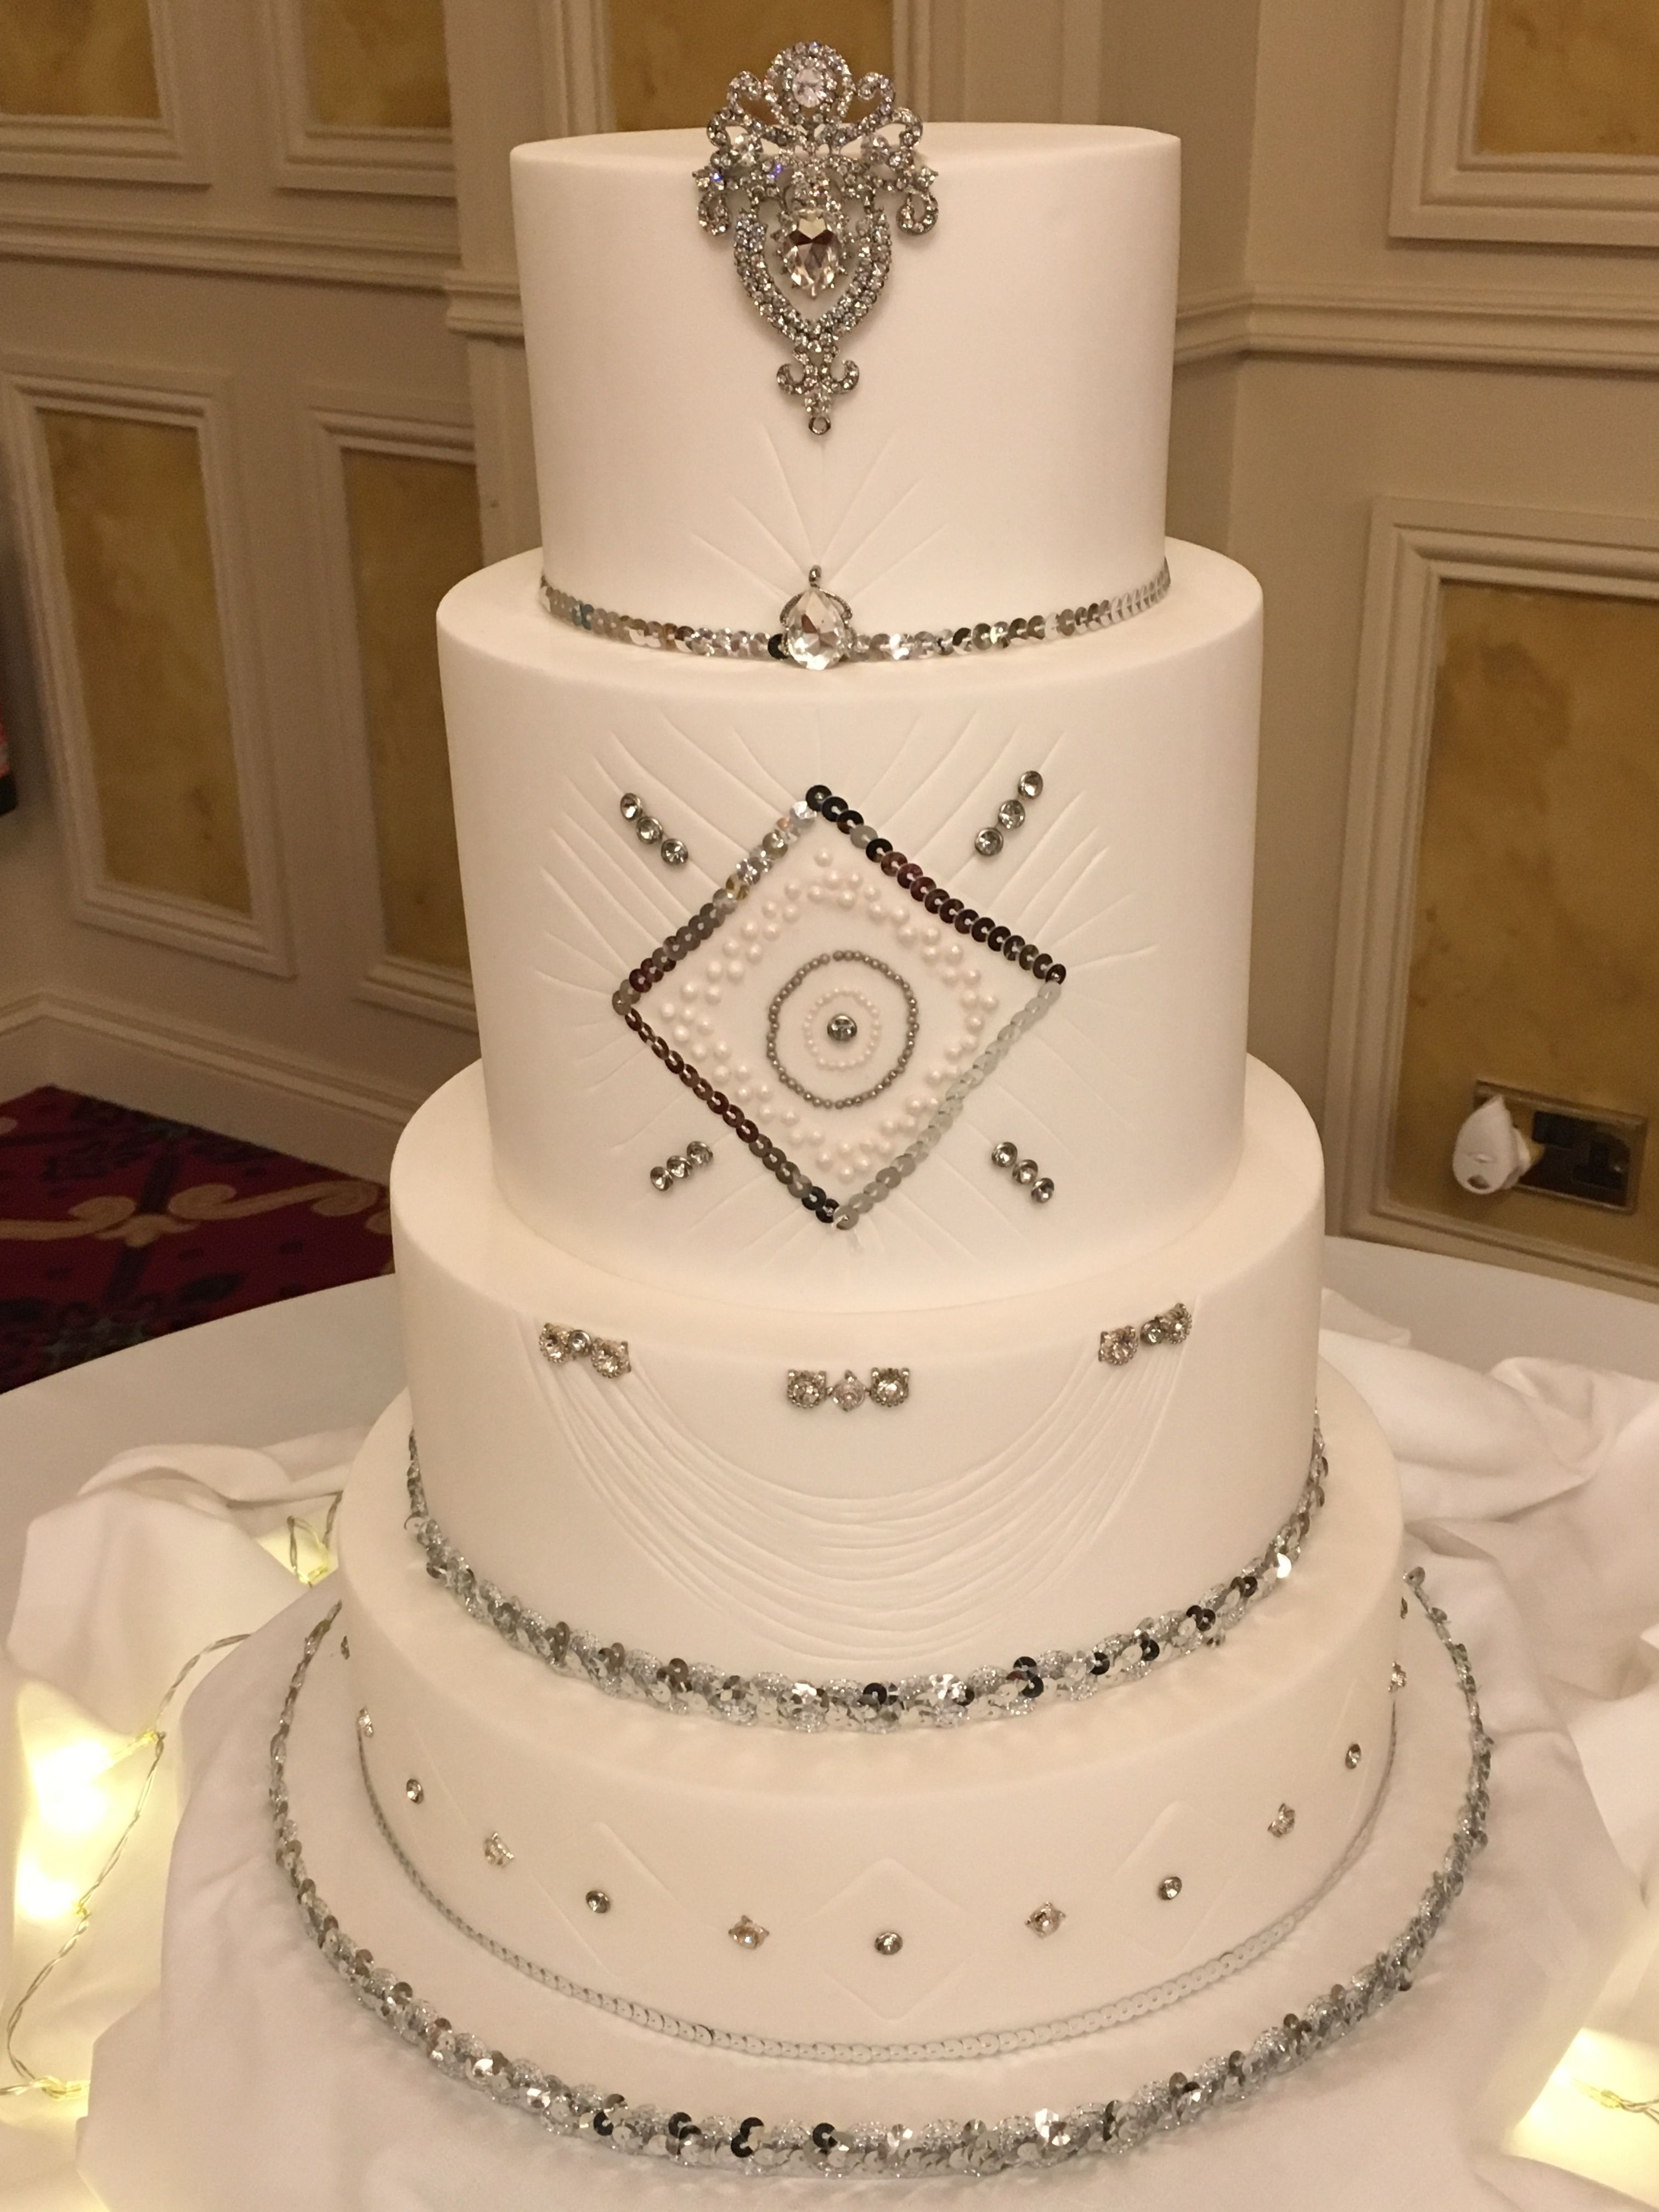 Find This Pin And More On Vons Cake Art Wedding Cakes By Vonscakeart